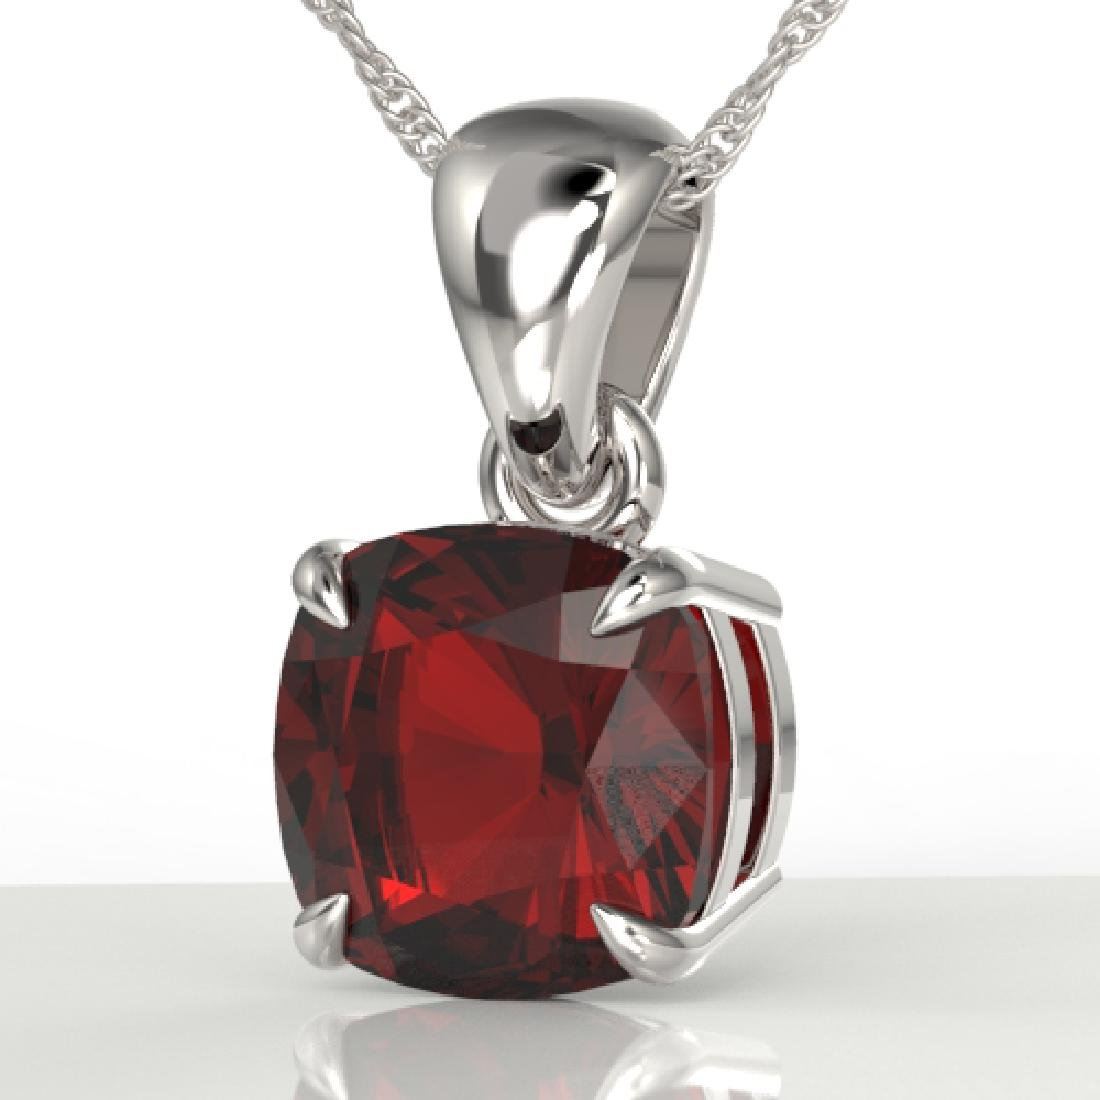 1.50 Cushion Cut CTW Garnet Designer Solitaire Necklace